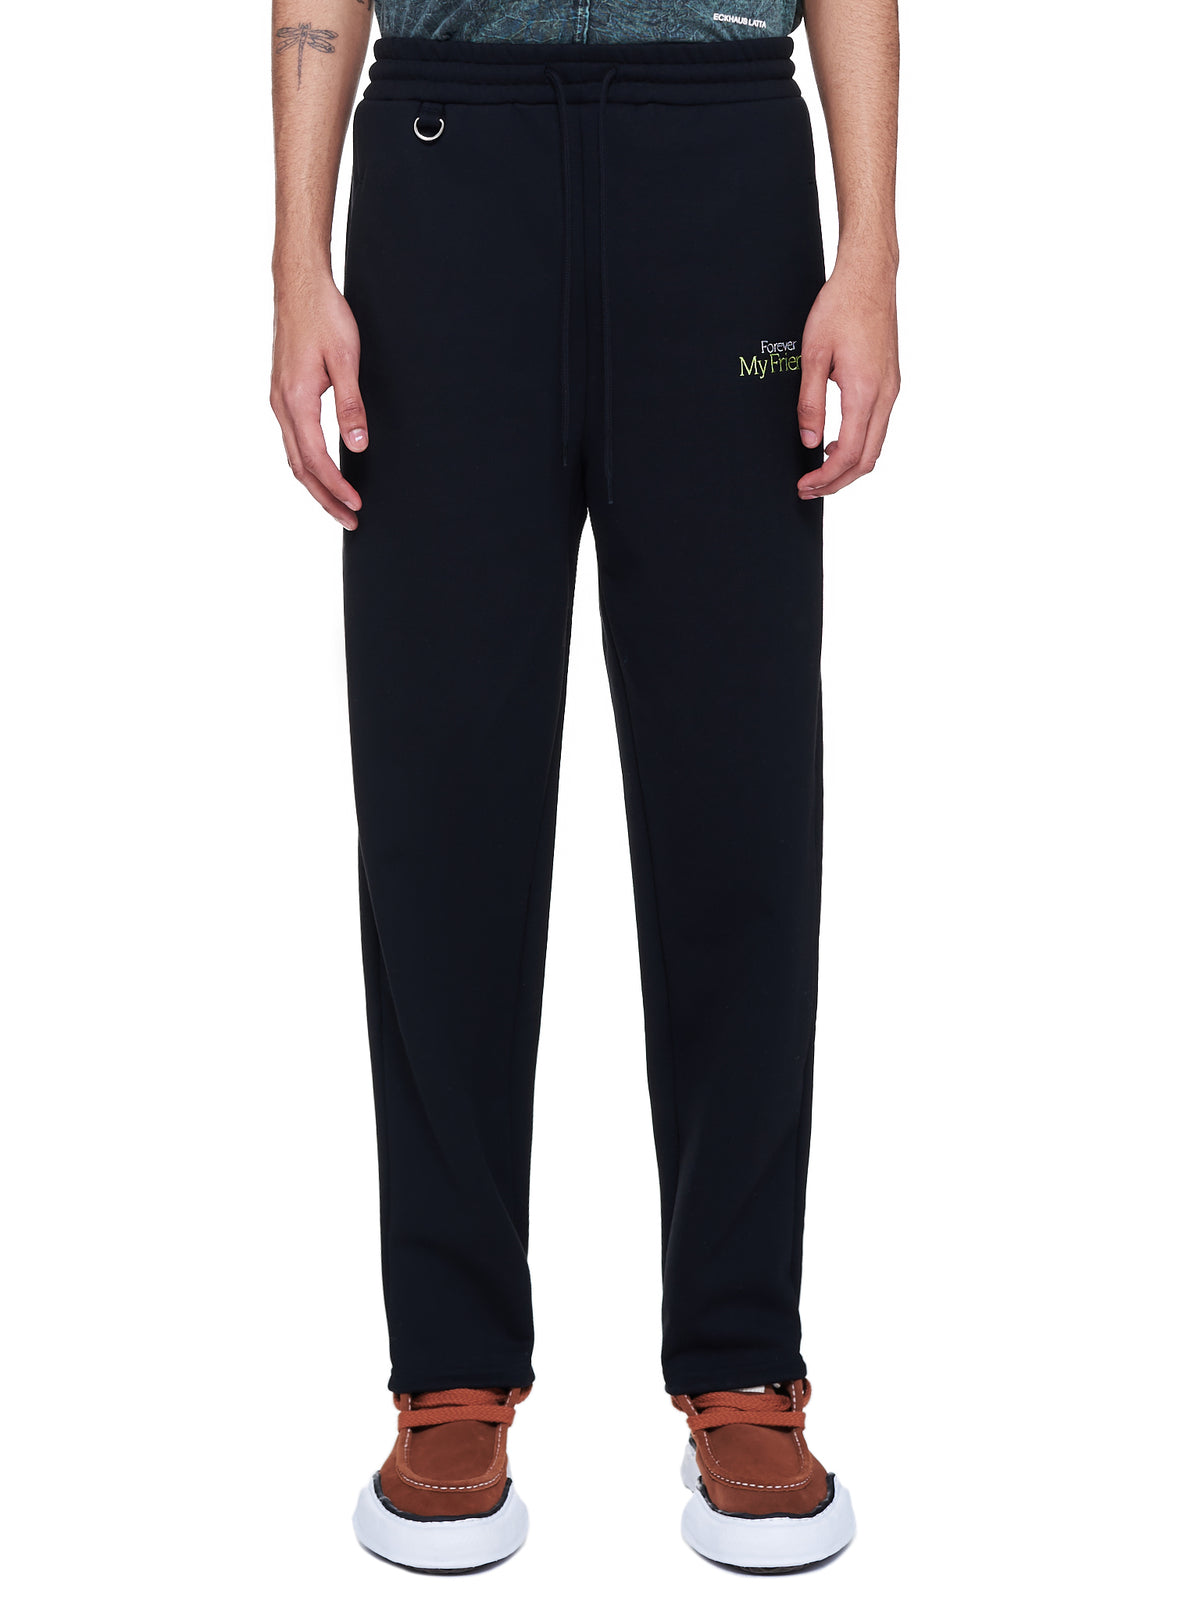 'With My Friend' Sweats Trousers (28PT149-BLACK)